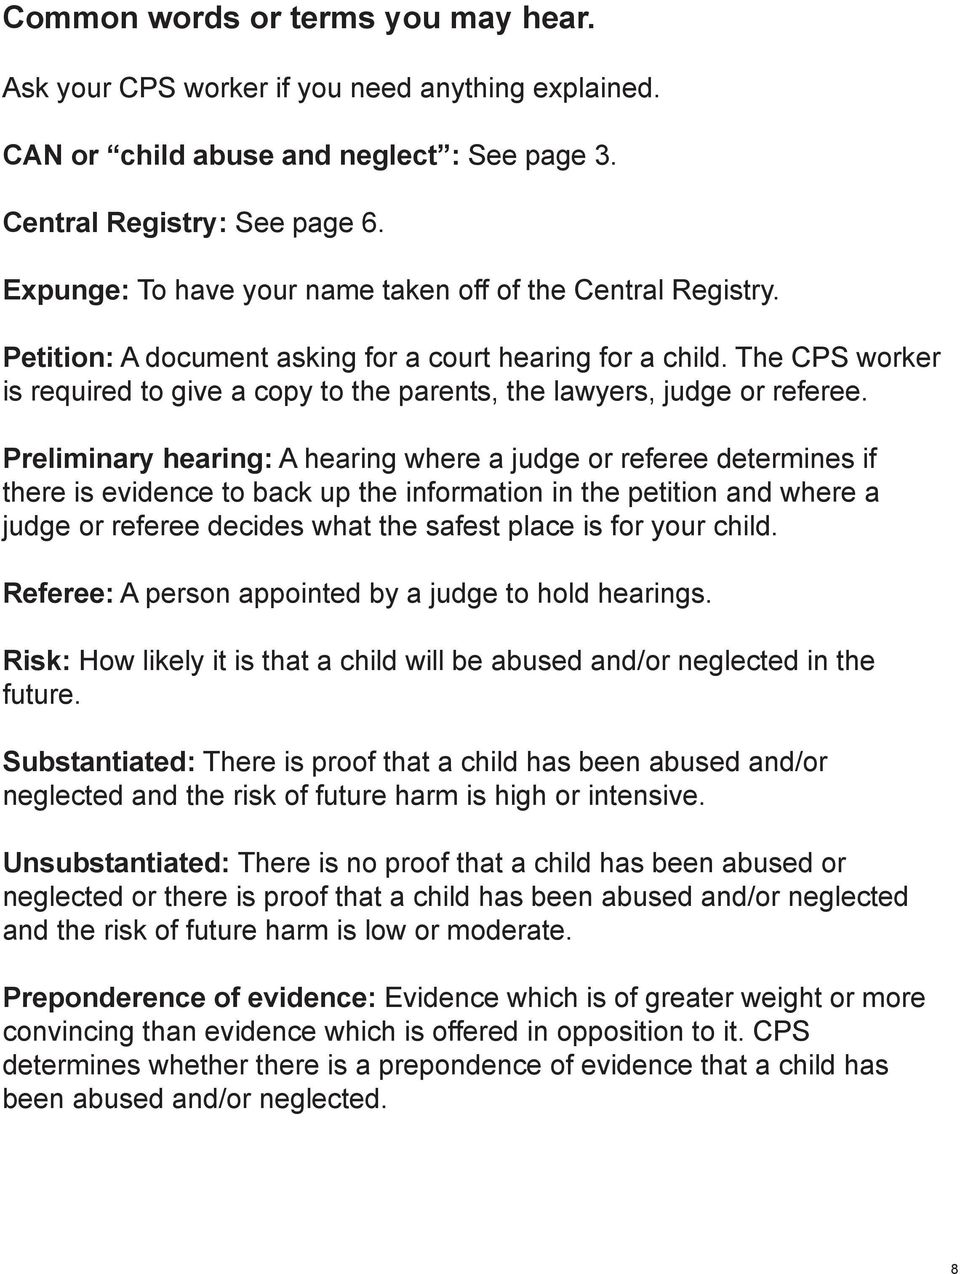 The CPS worker is required to give a copy to the parents, the lawyers, judge or referee.